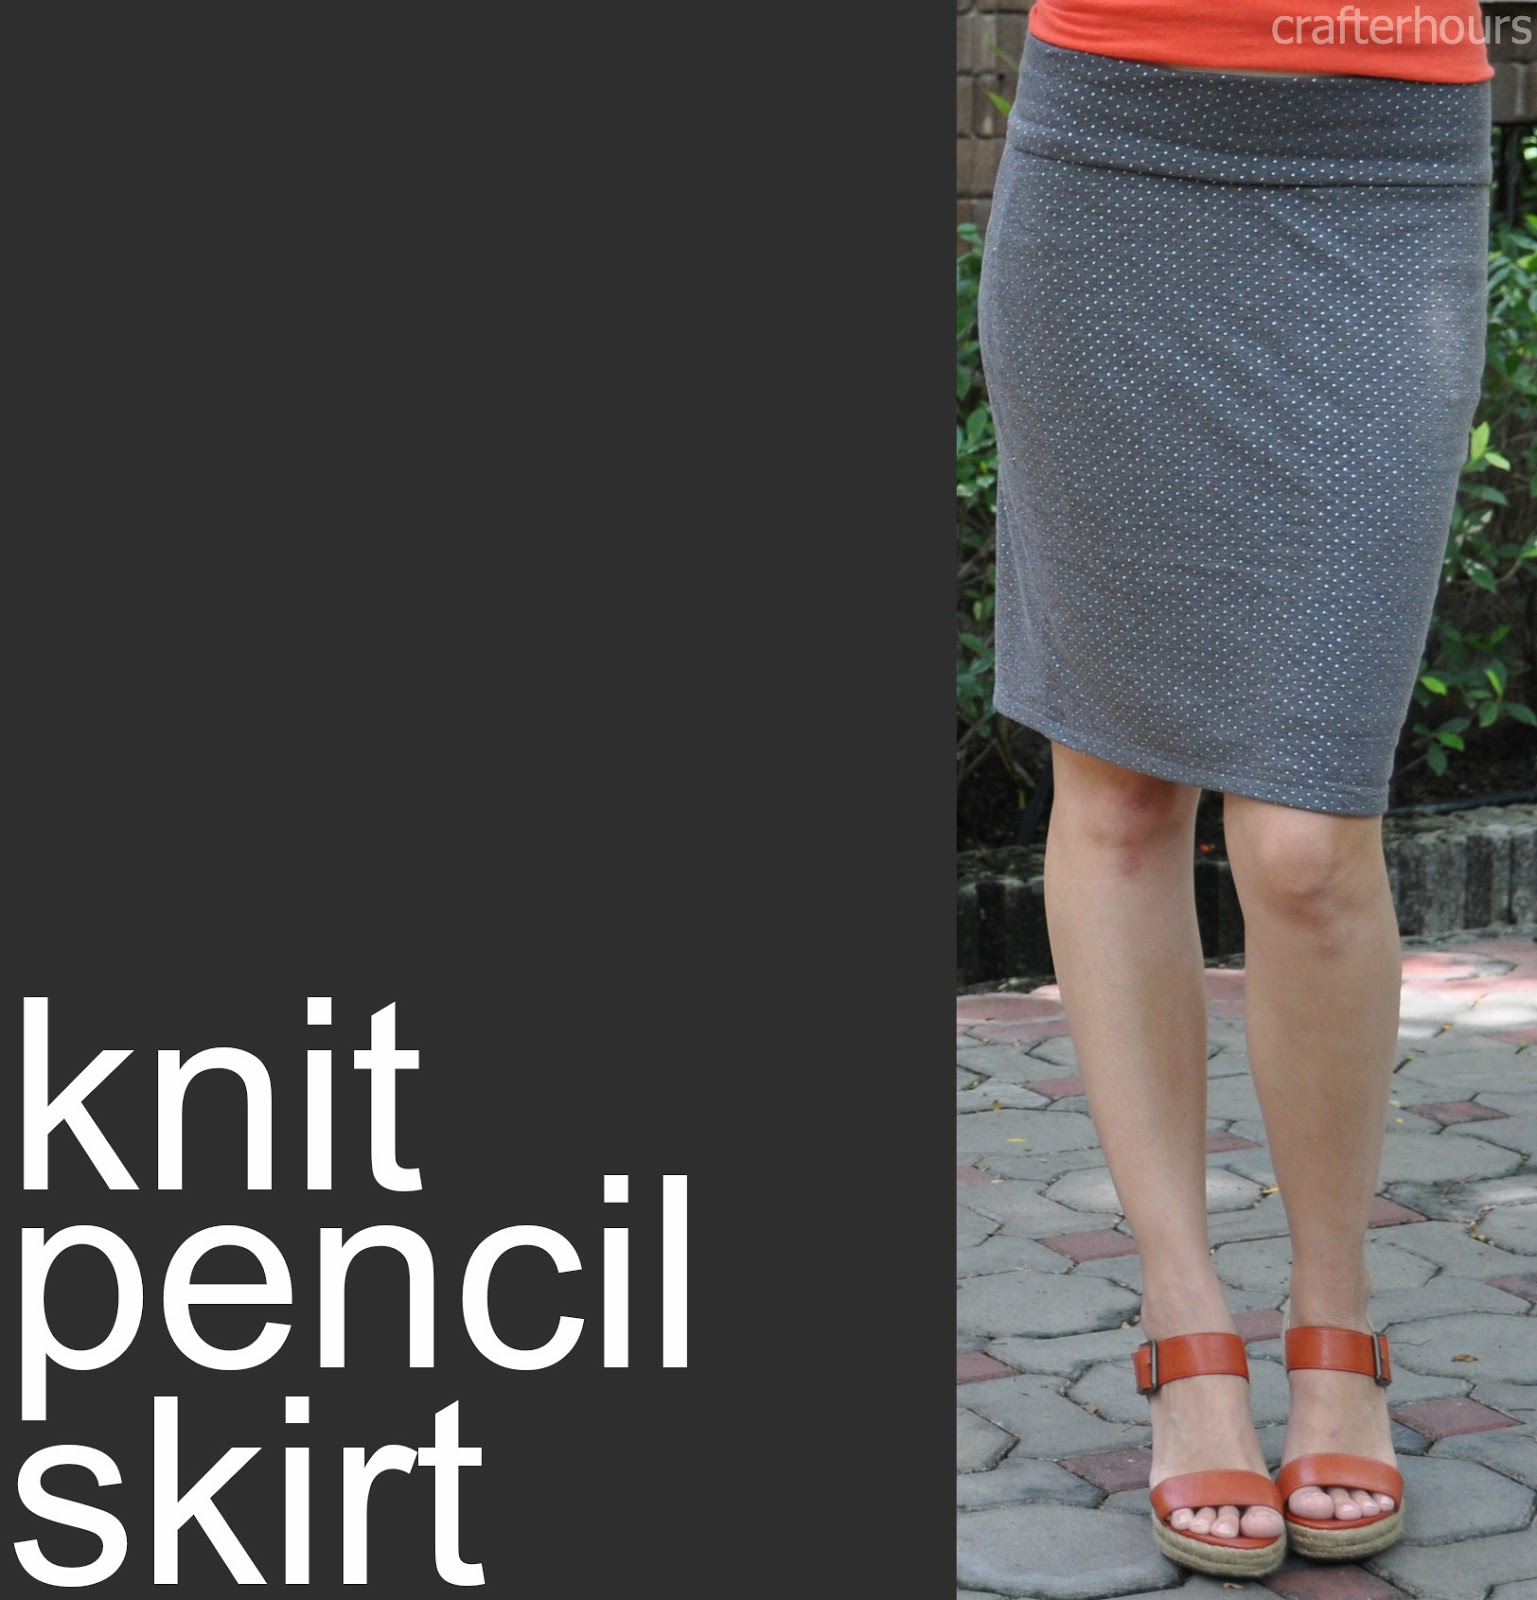 Knit Pencil Skirt: A Tutorial - crafterhours